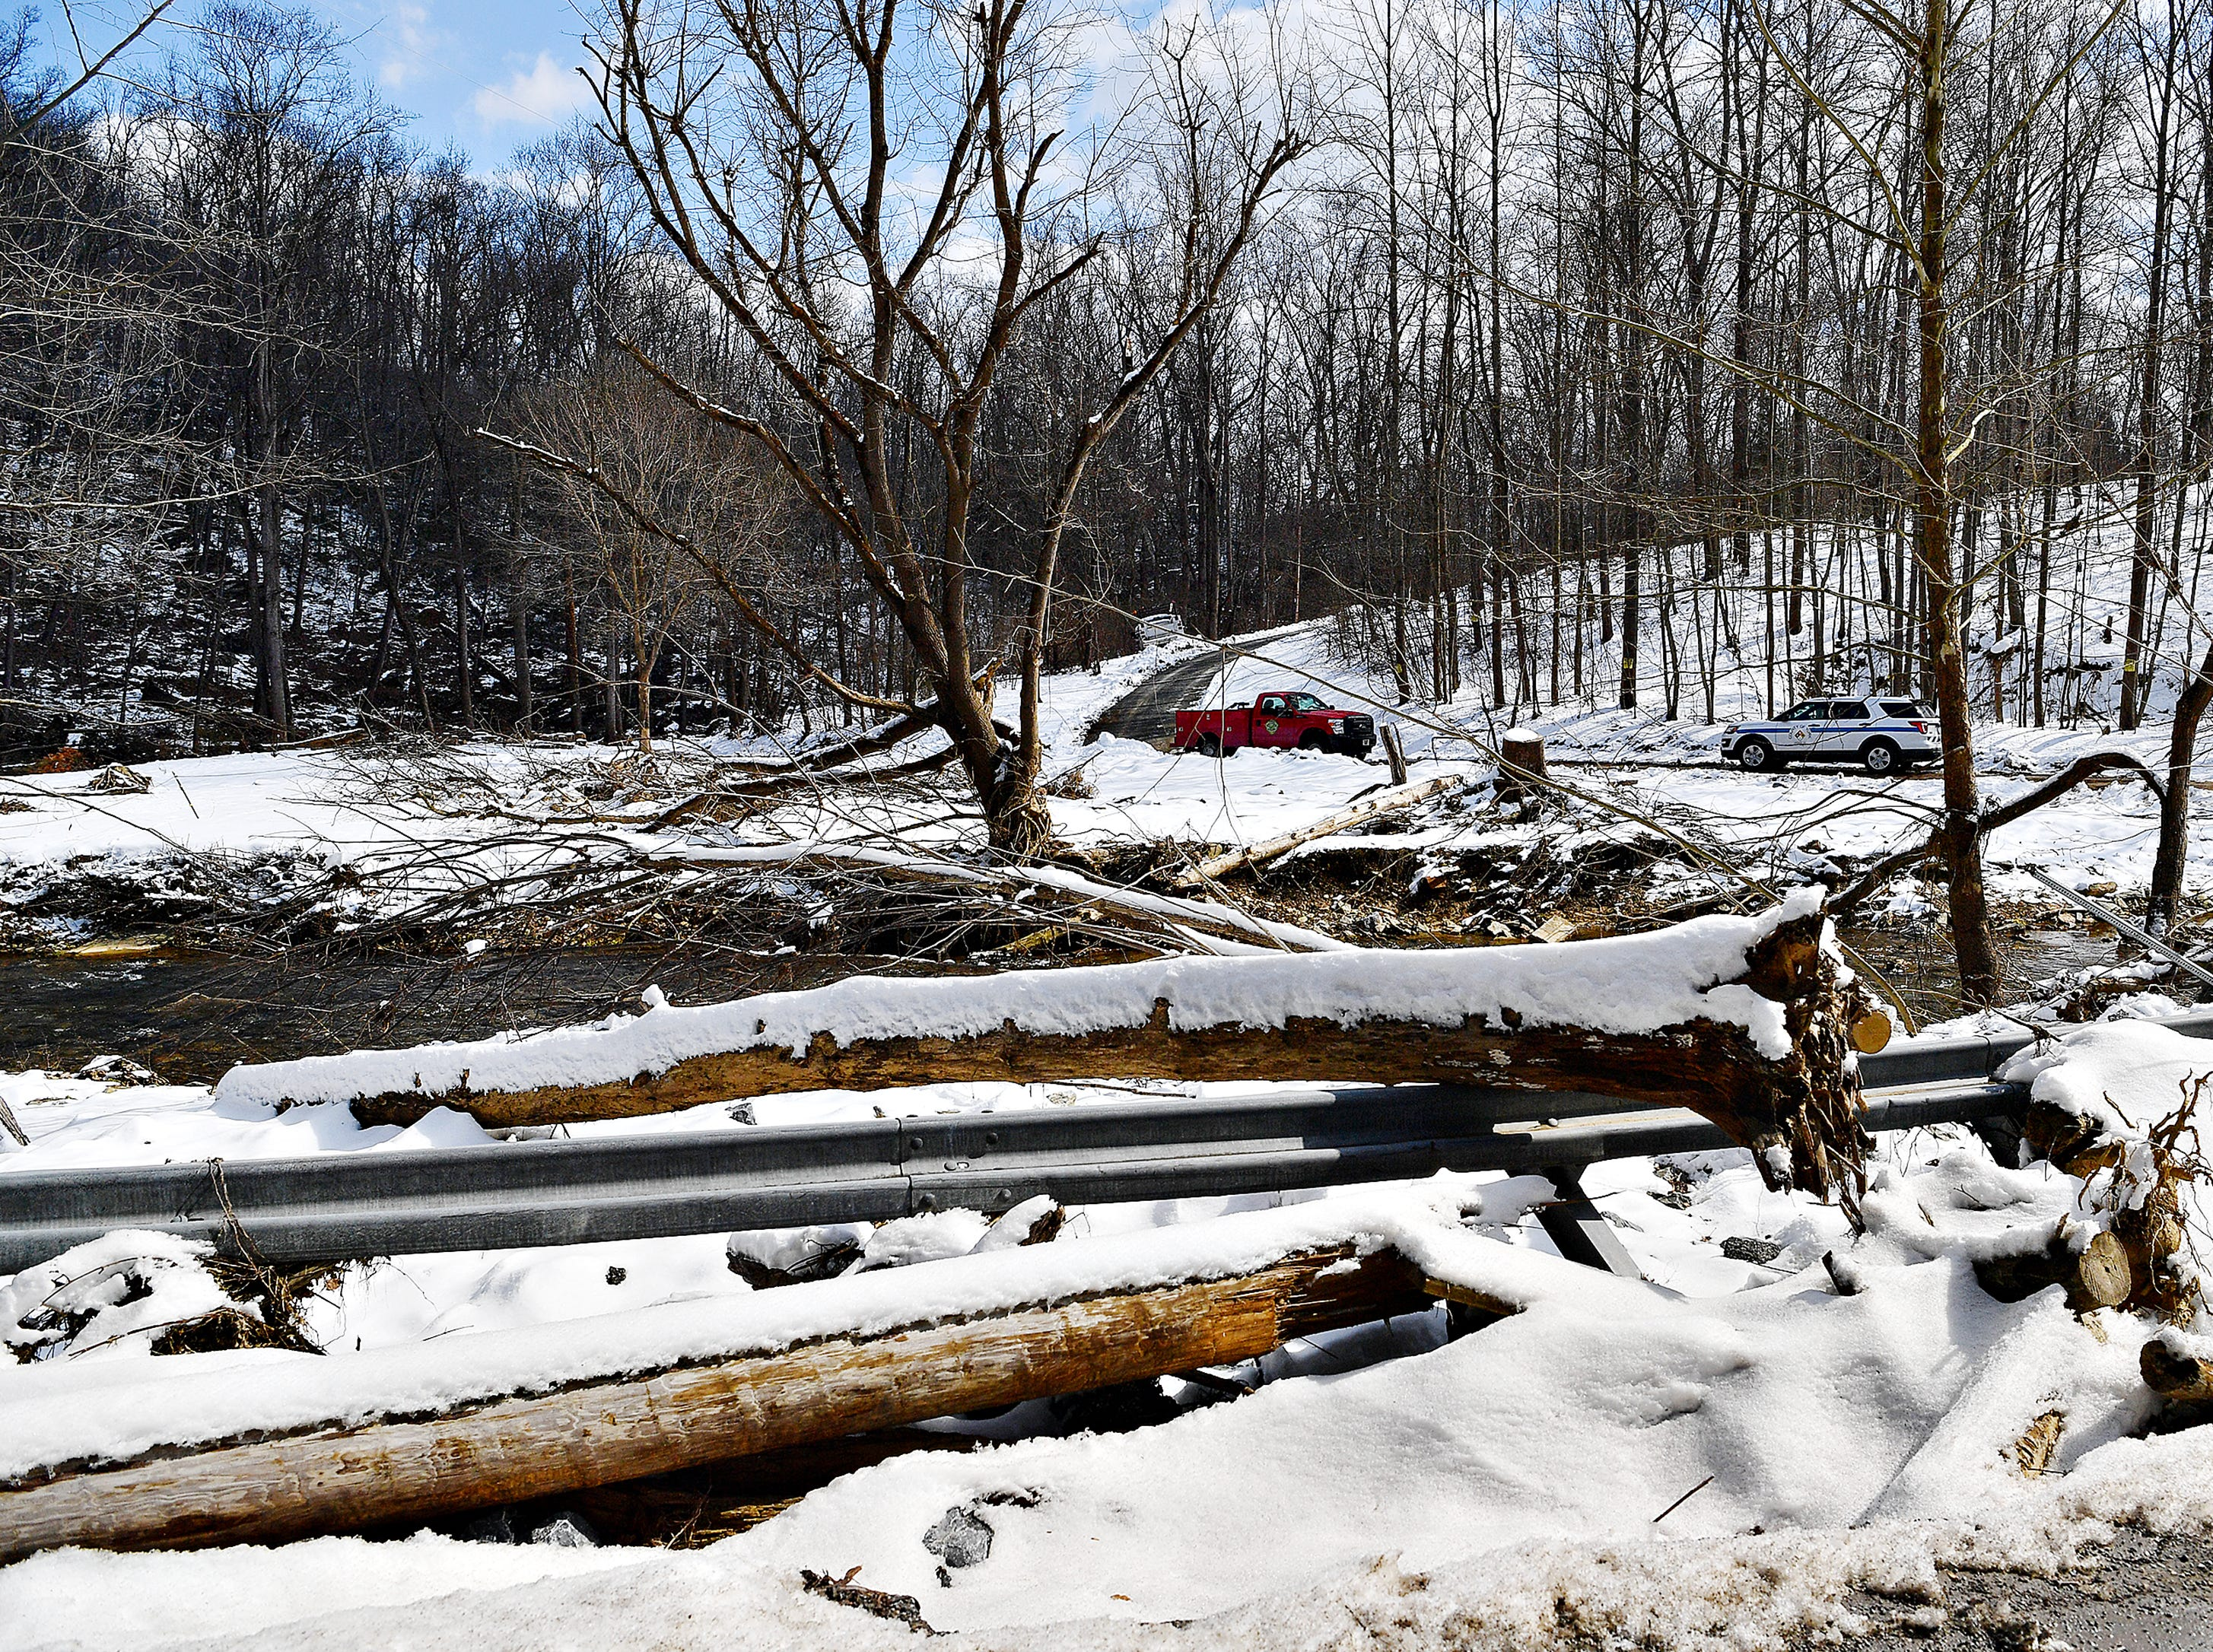 Representatives from the state Department of Environmental Protection discuss flood relief during a press conference at the intersection of Mill and Gum Tree roads in Chanceford Township, Thursday, March 7, 2019. Dawn J. Sagert photo